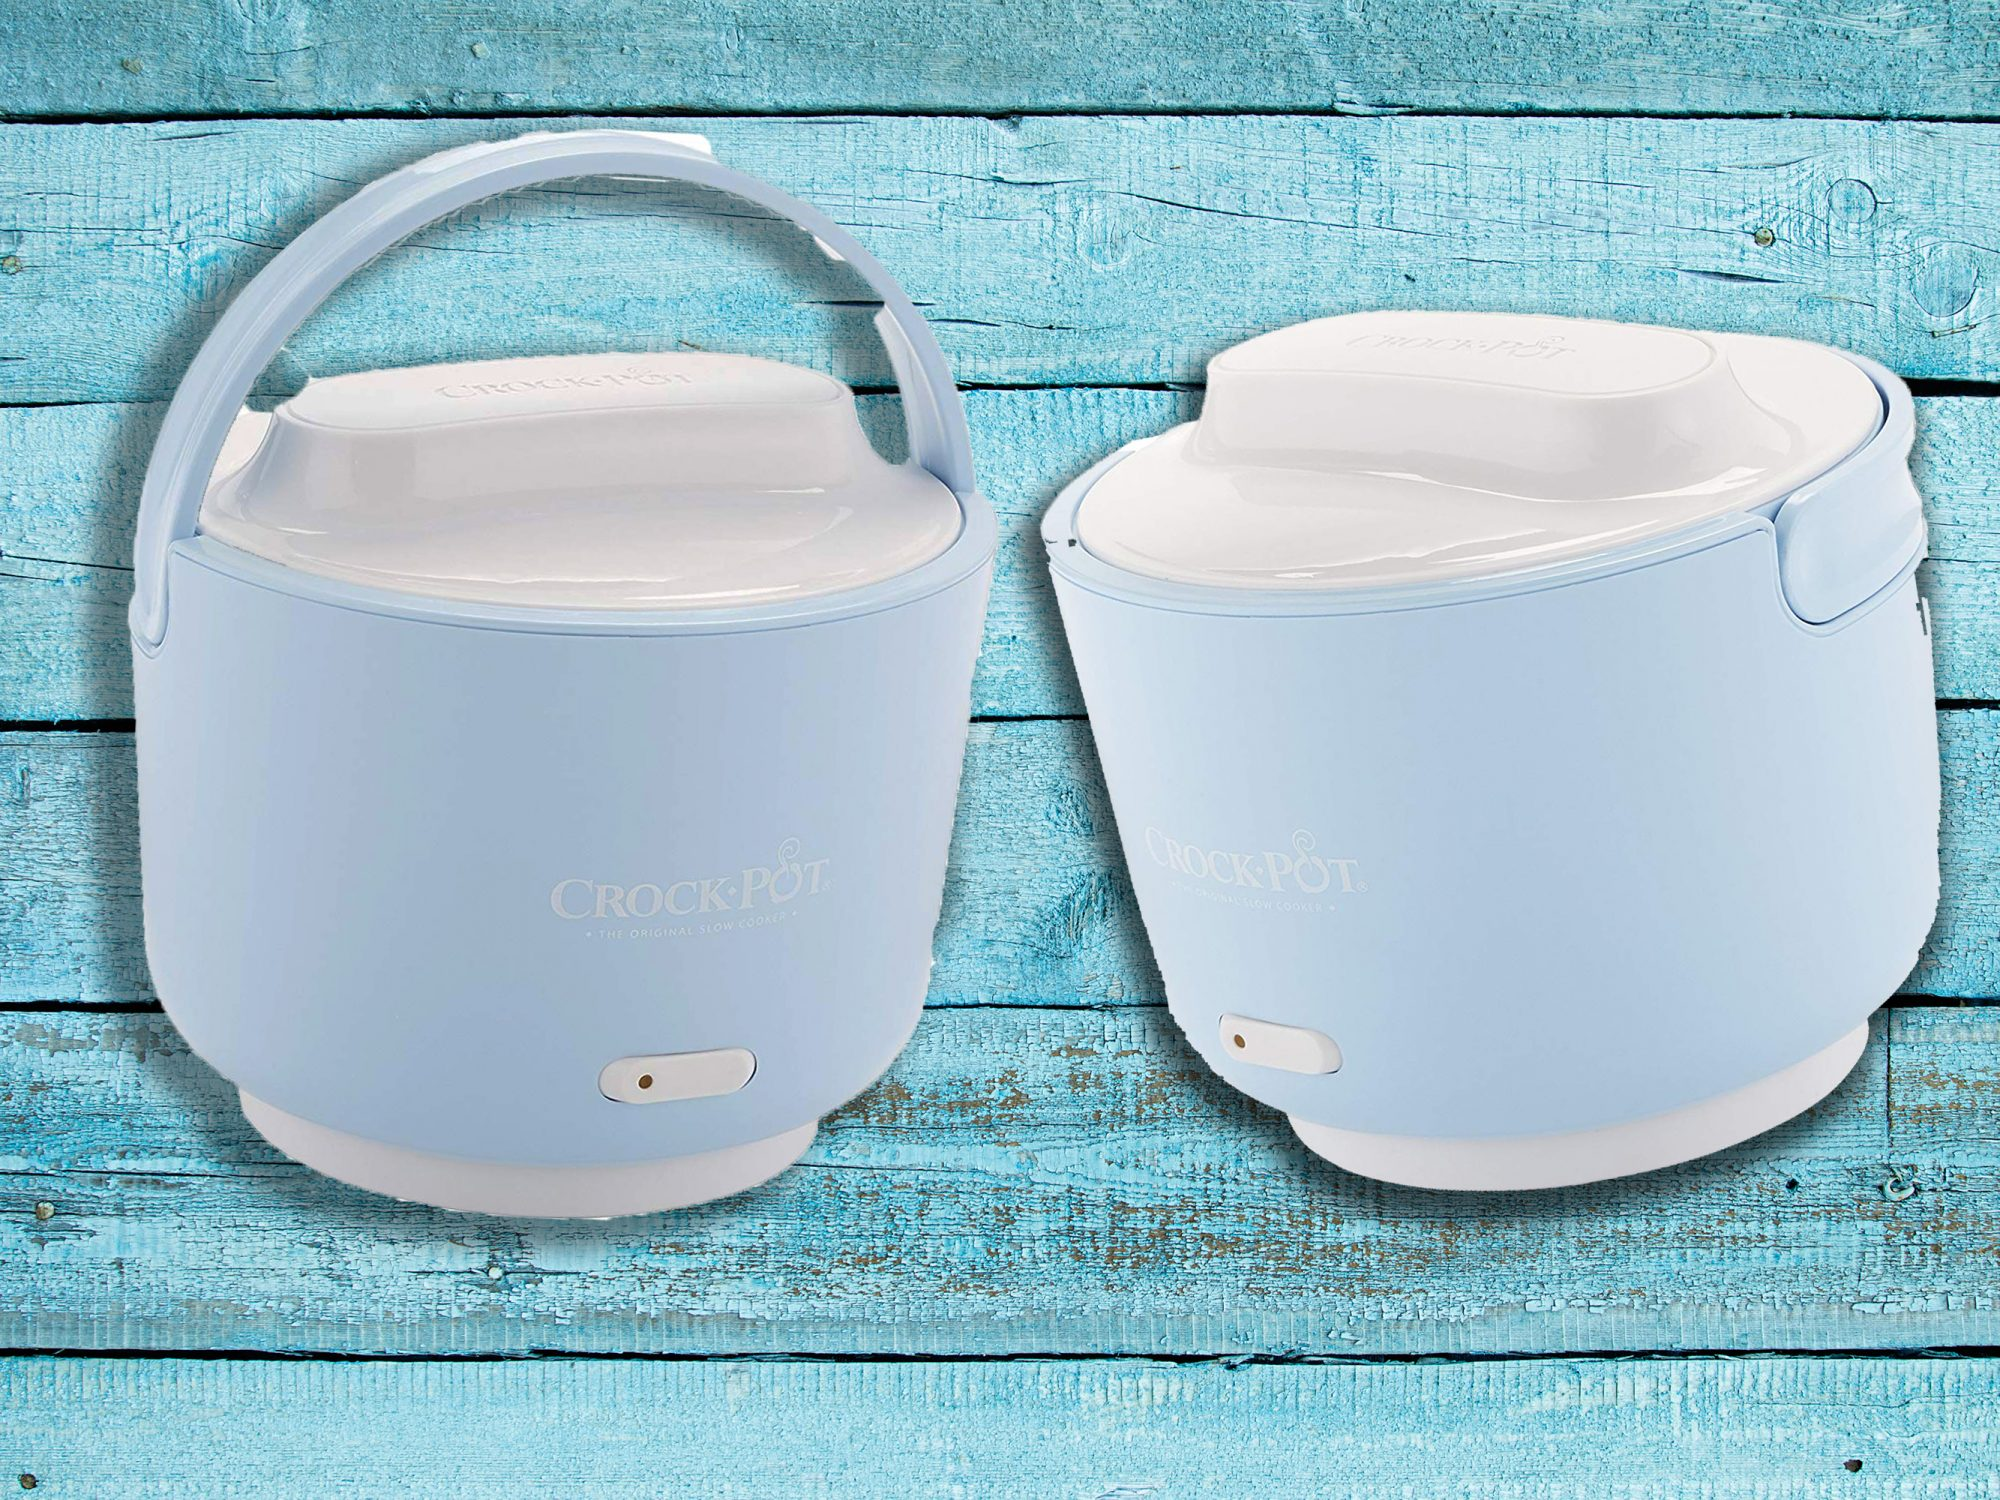 I Tried It, I Loved It: The Lunch-Sized Crock Pot Has Changed My Meal Prep Forever